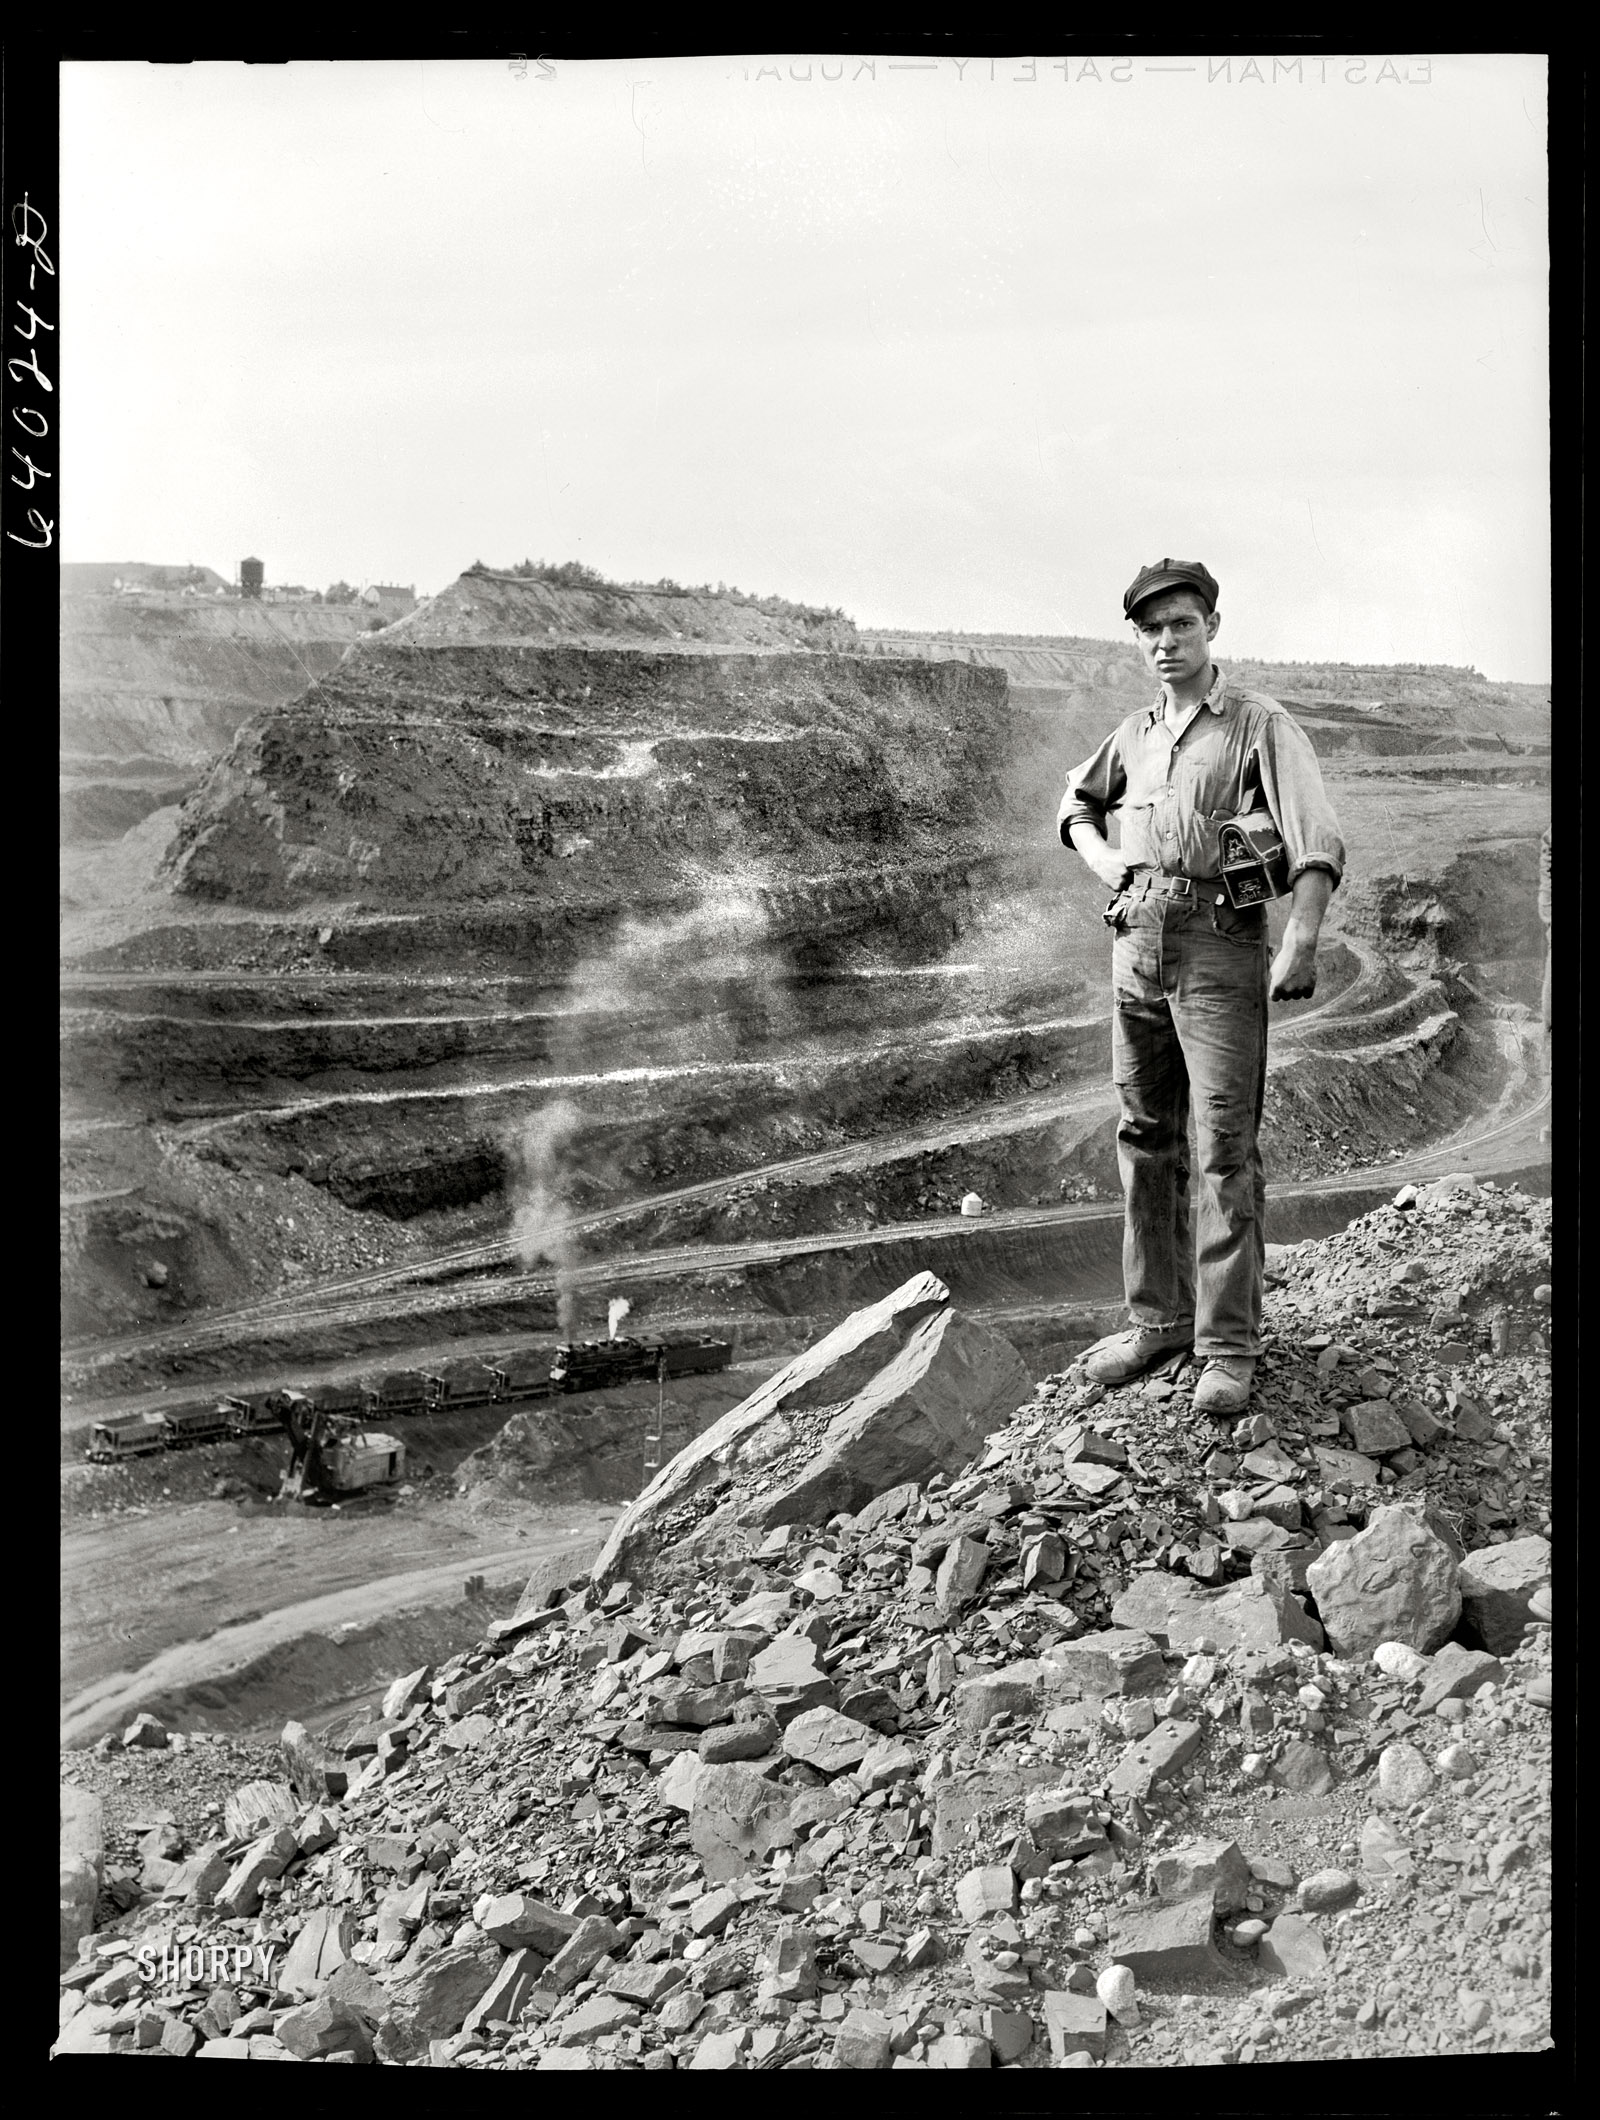 The humbling of giants: The rise and decline of the Iron Range —Essay